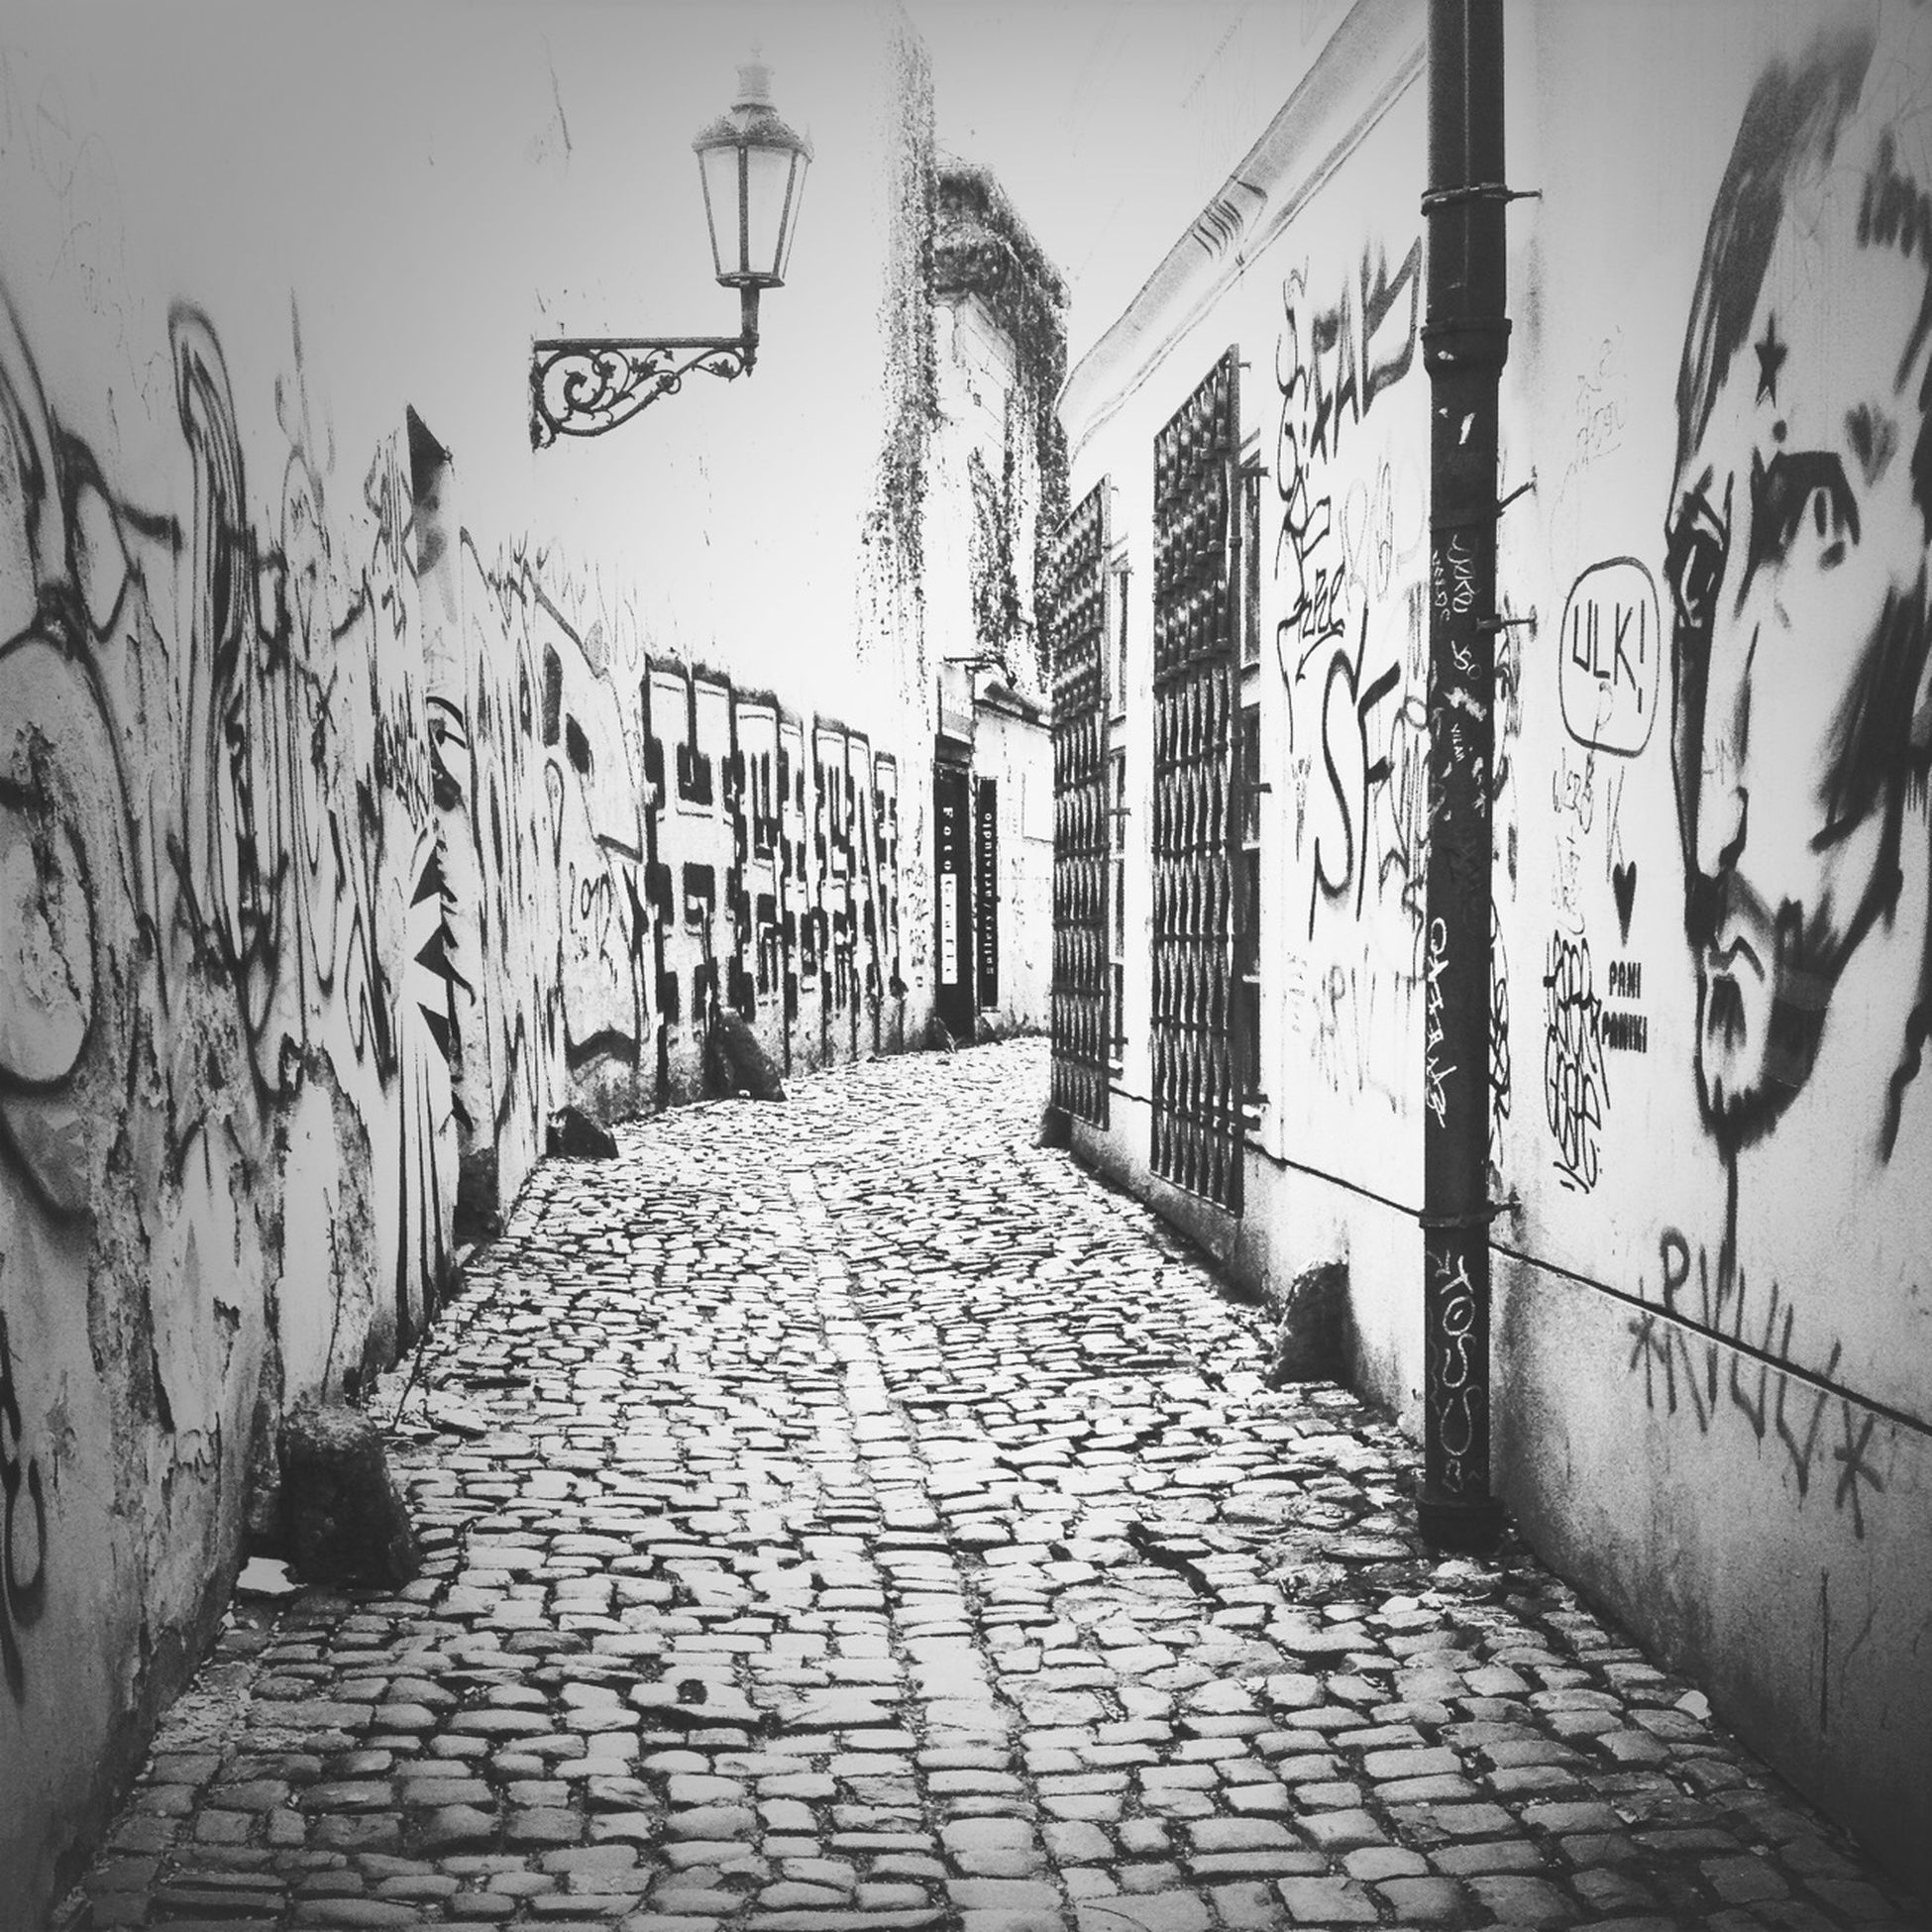 graffiti, architecture, built structure, wall - building feature, the way forward, art, art and craft, text, creativity, wall, indoors, diminishing perspective, cobblestone, building exterior, western script, walkway, no people, day, building, brick wall